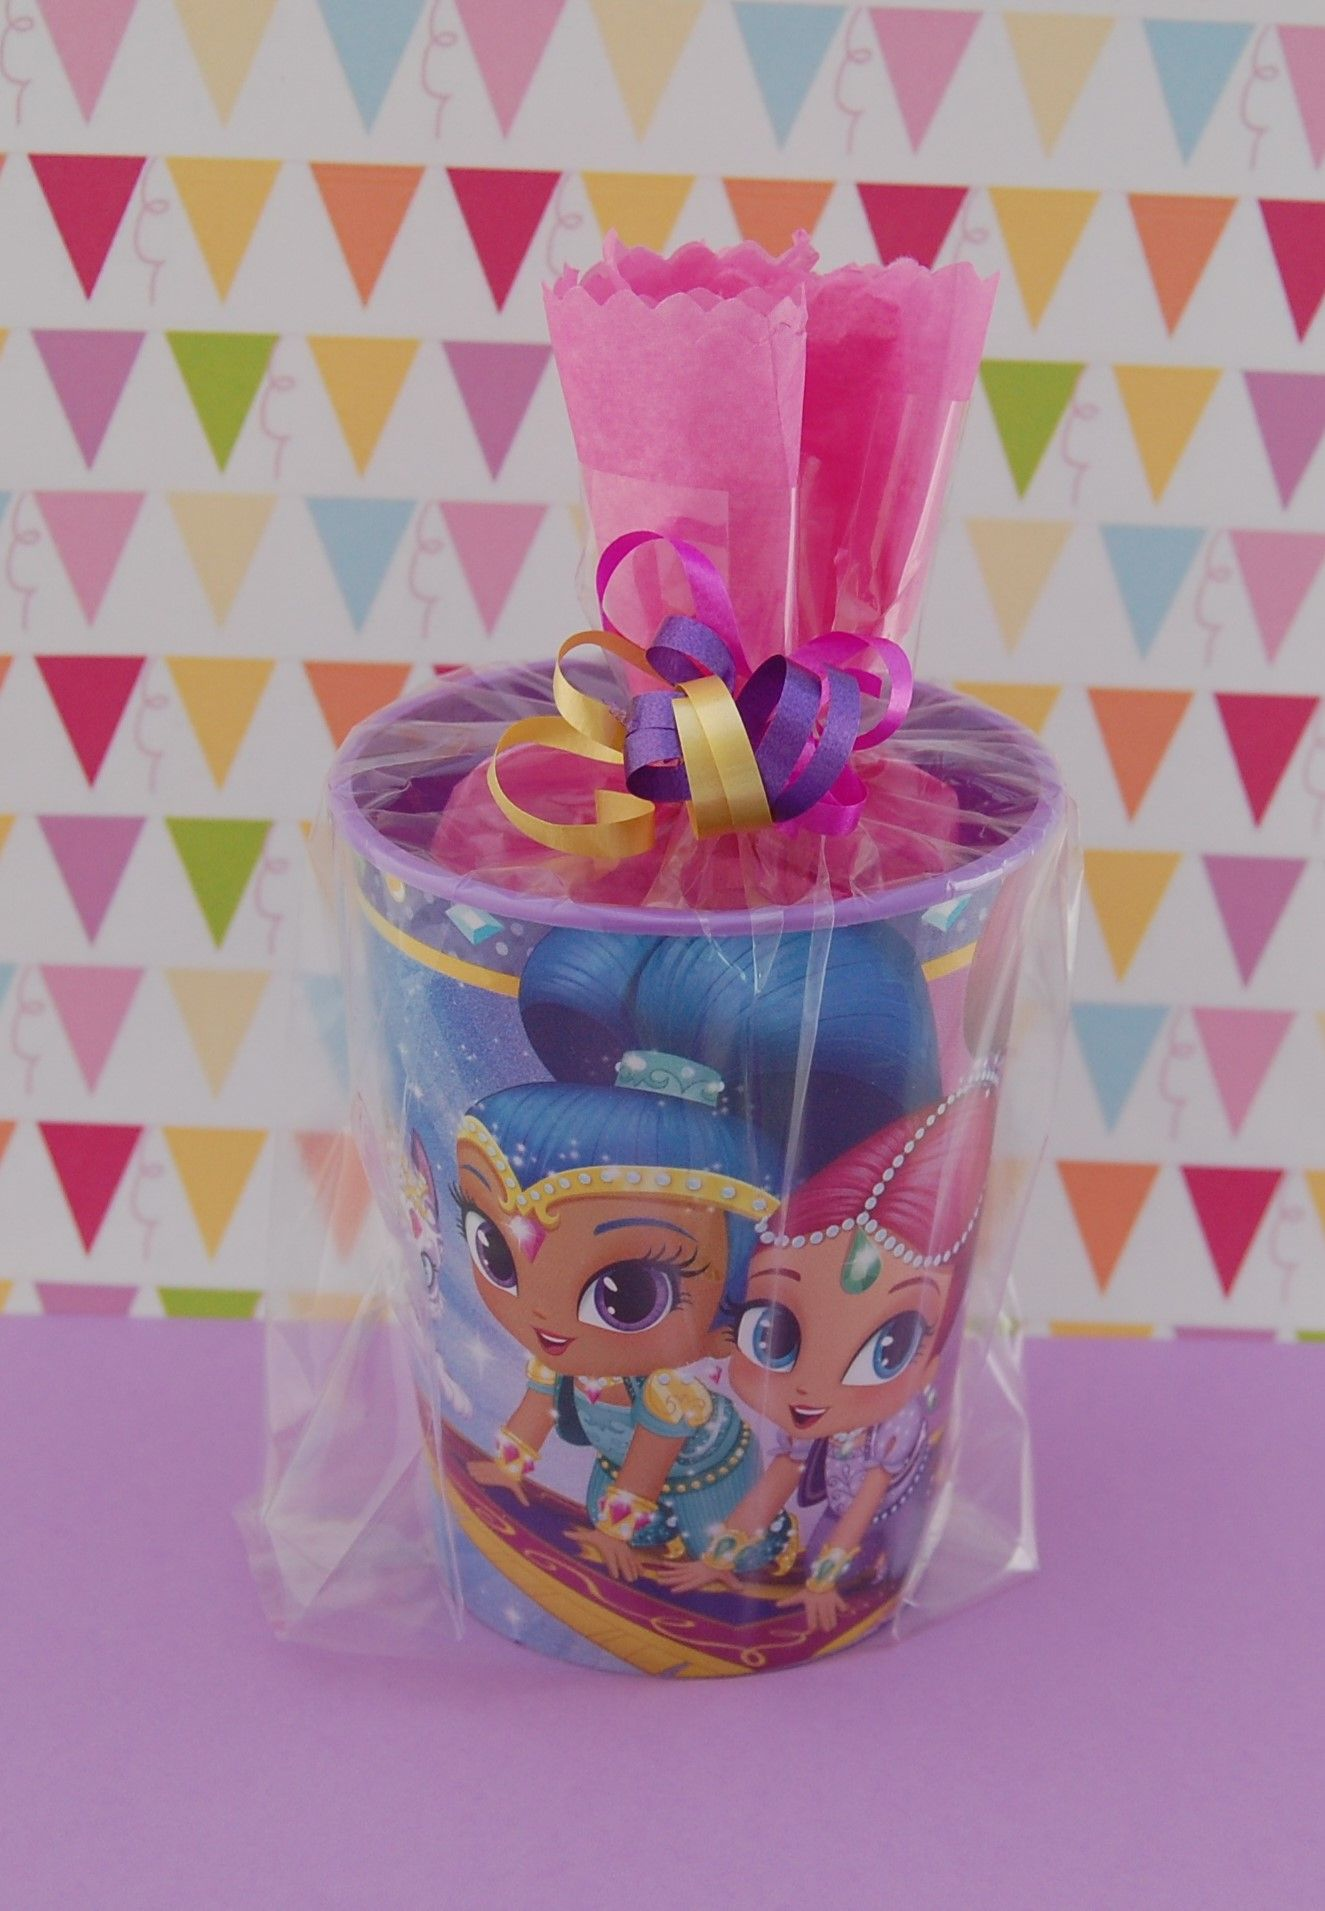 SHIMMER AND SHINE Pre Filled Party Favors Goodie Bags For Kids Birthday Parties